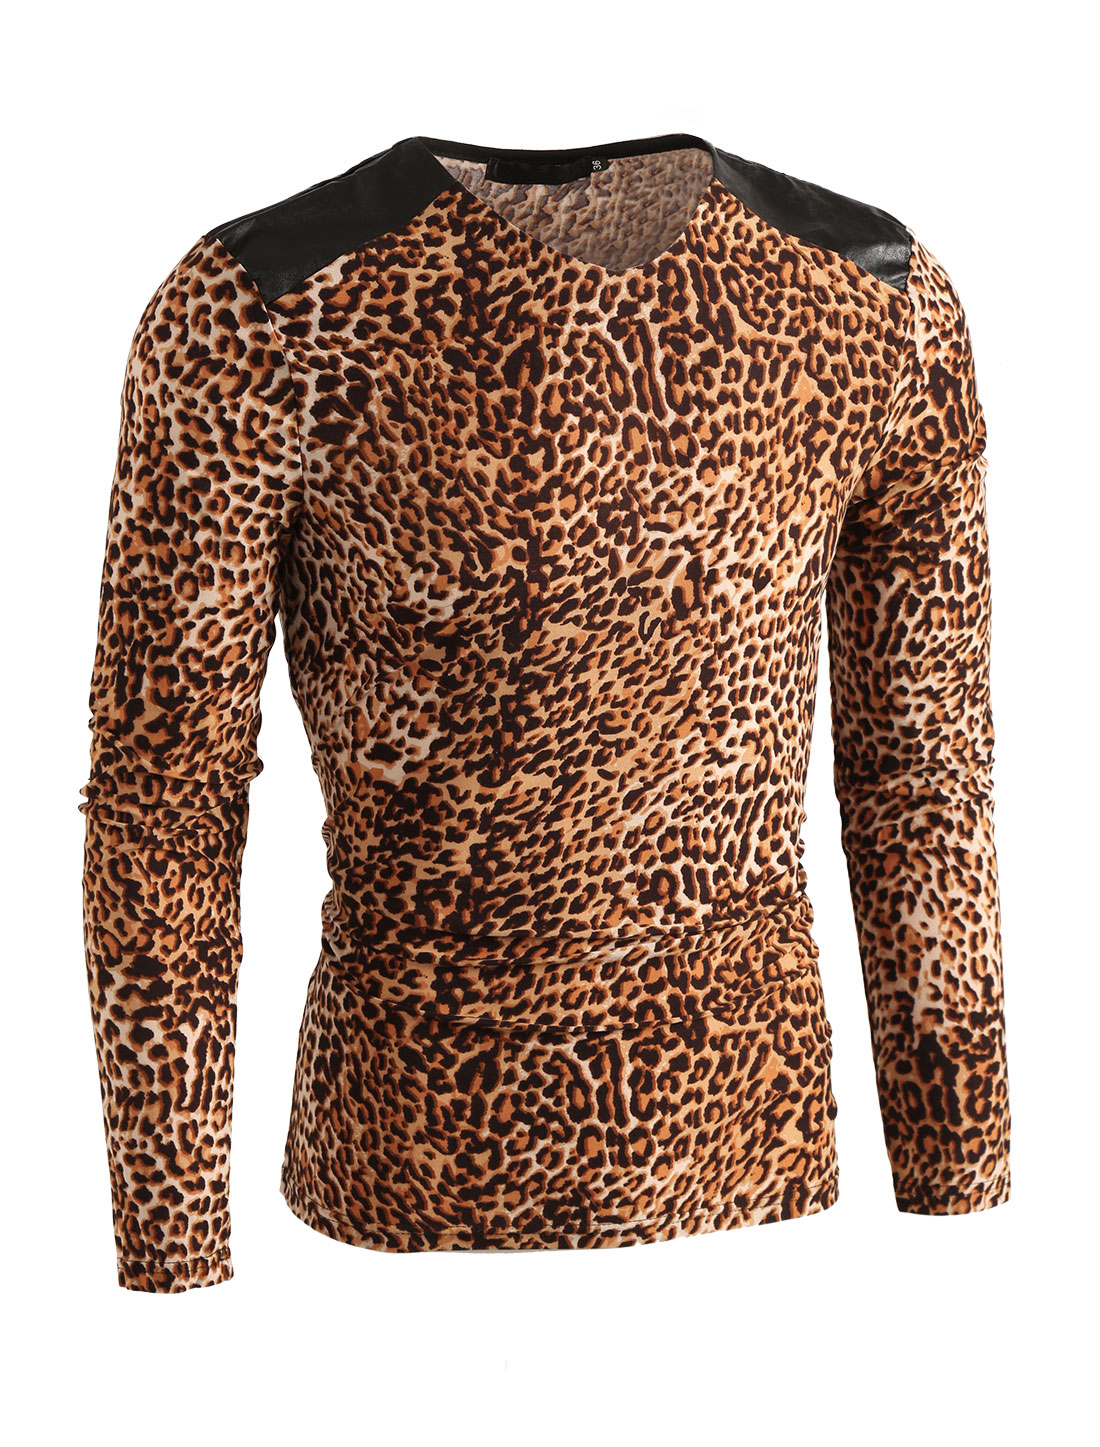 Men Stylish Beige Brown Long-sleeve Leopard Prints Slim Top Shirt M